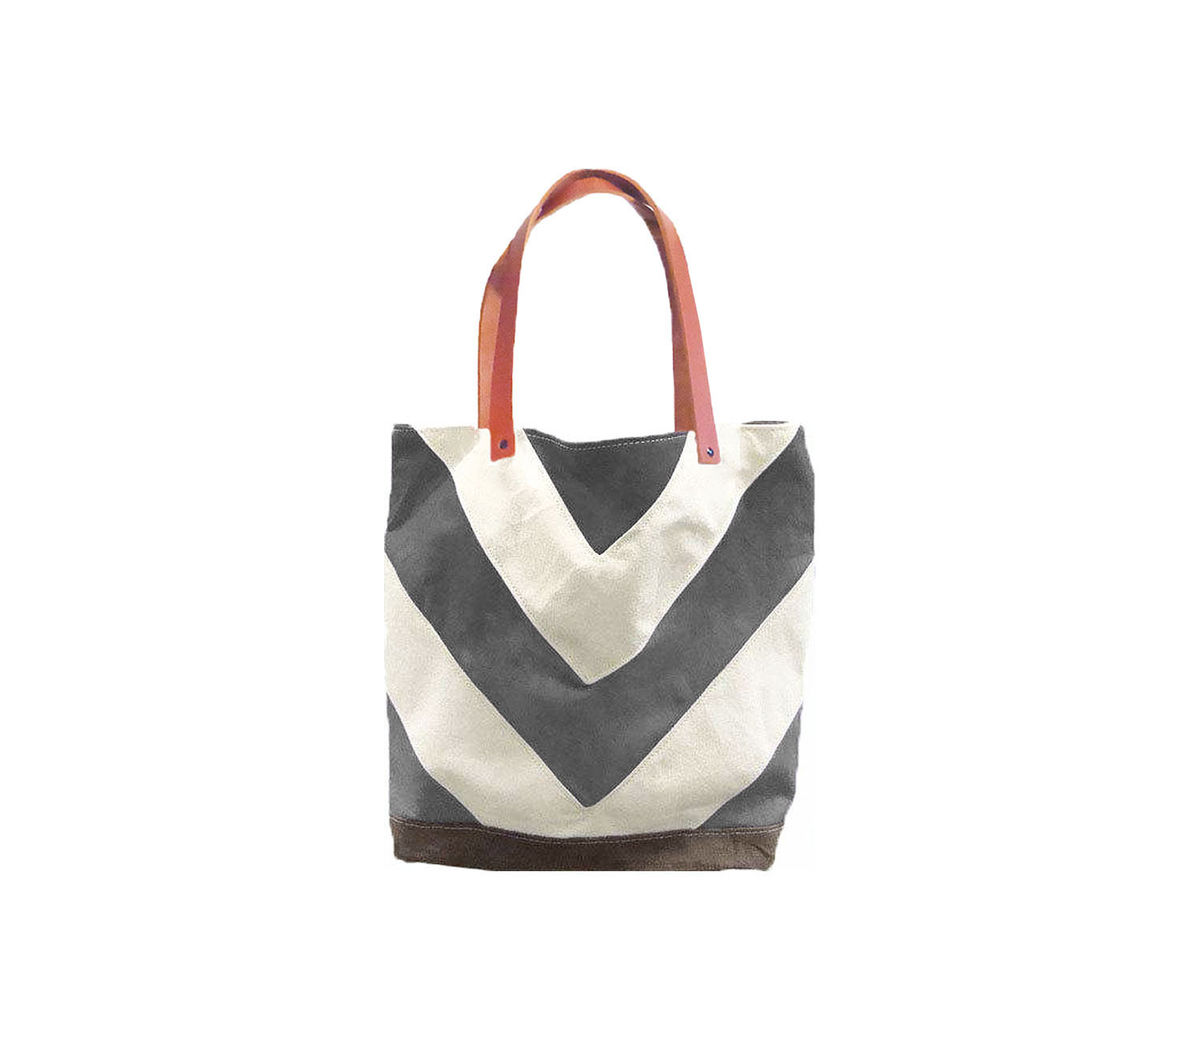 Chevron Tote City Market w/ Leather Straps in Confederate Grey - product images  of